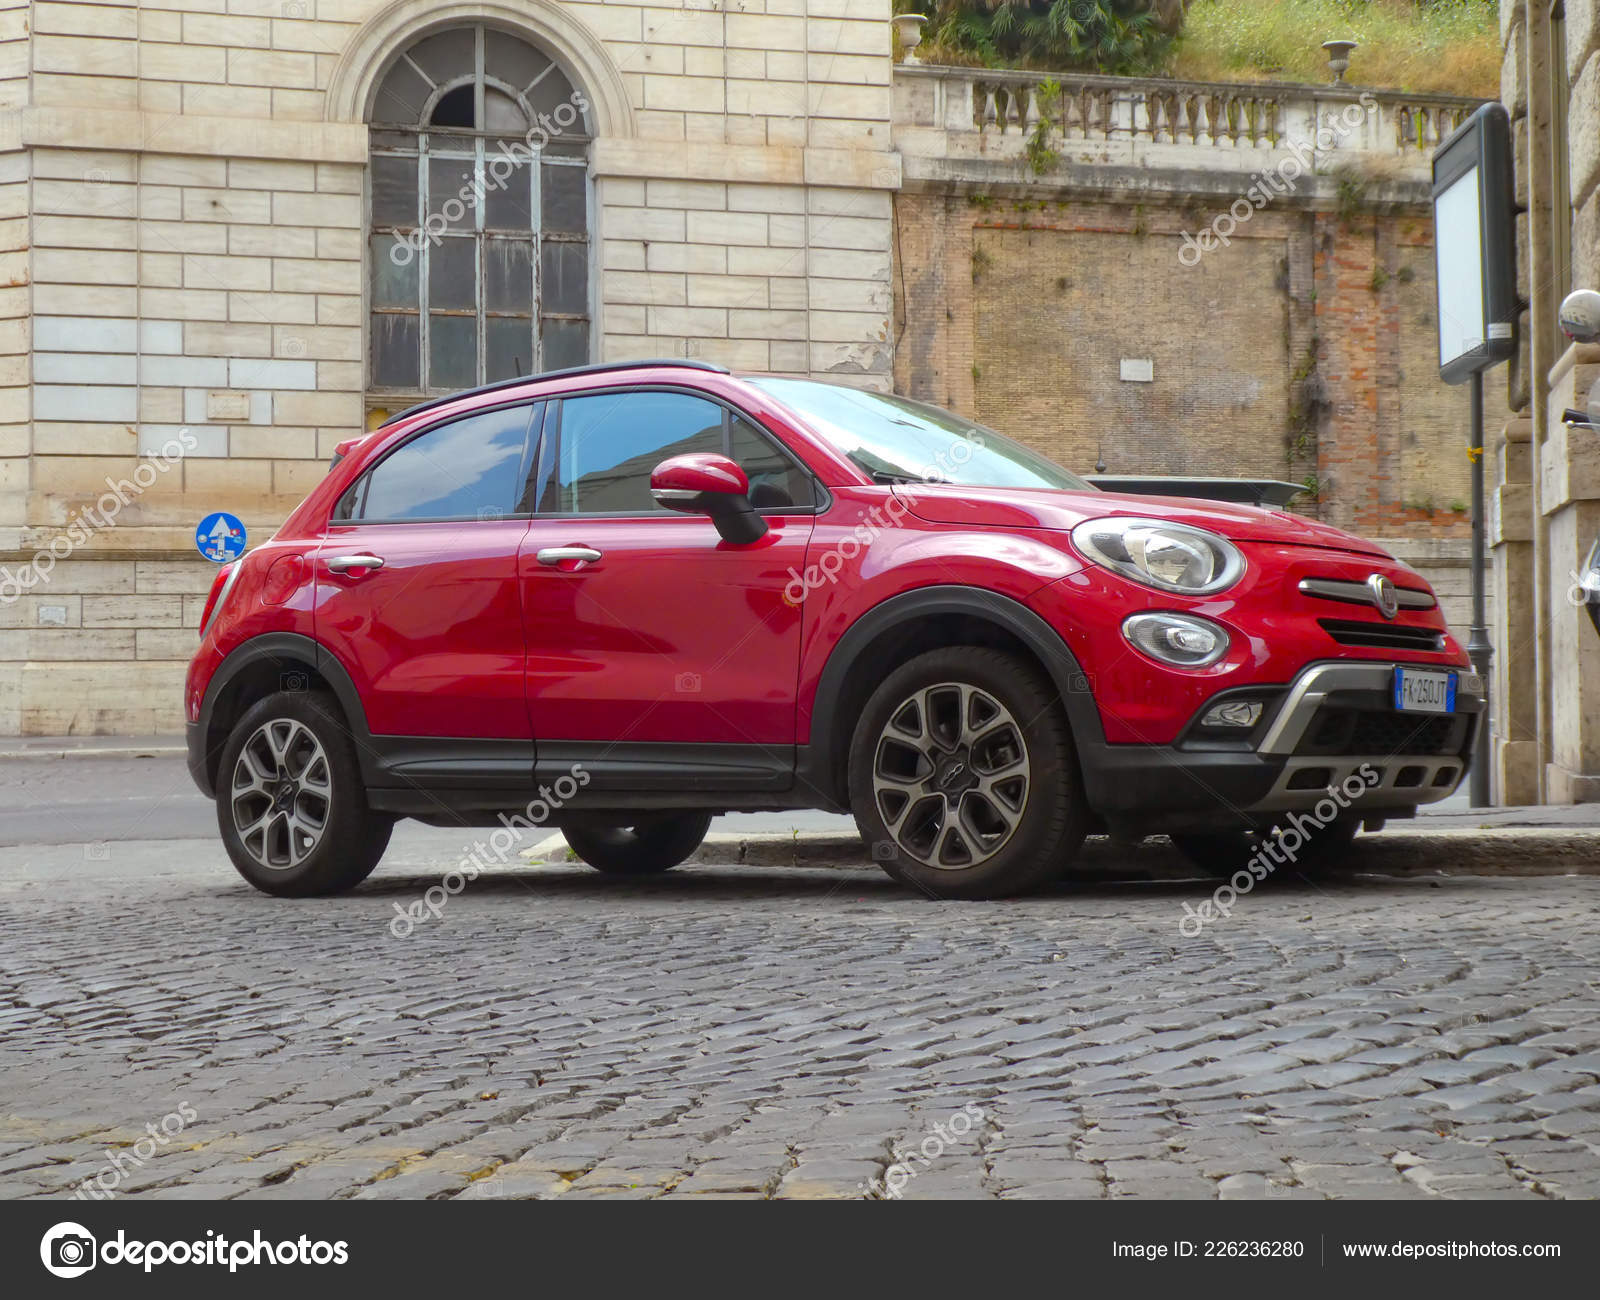 Rome Italy August 2018 Red Fiat 500 Car Side View – Stock